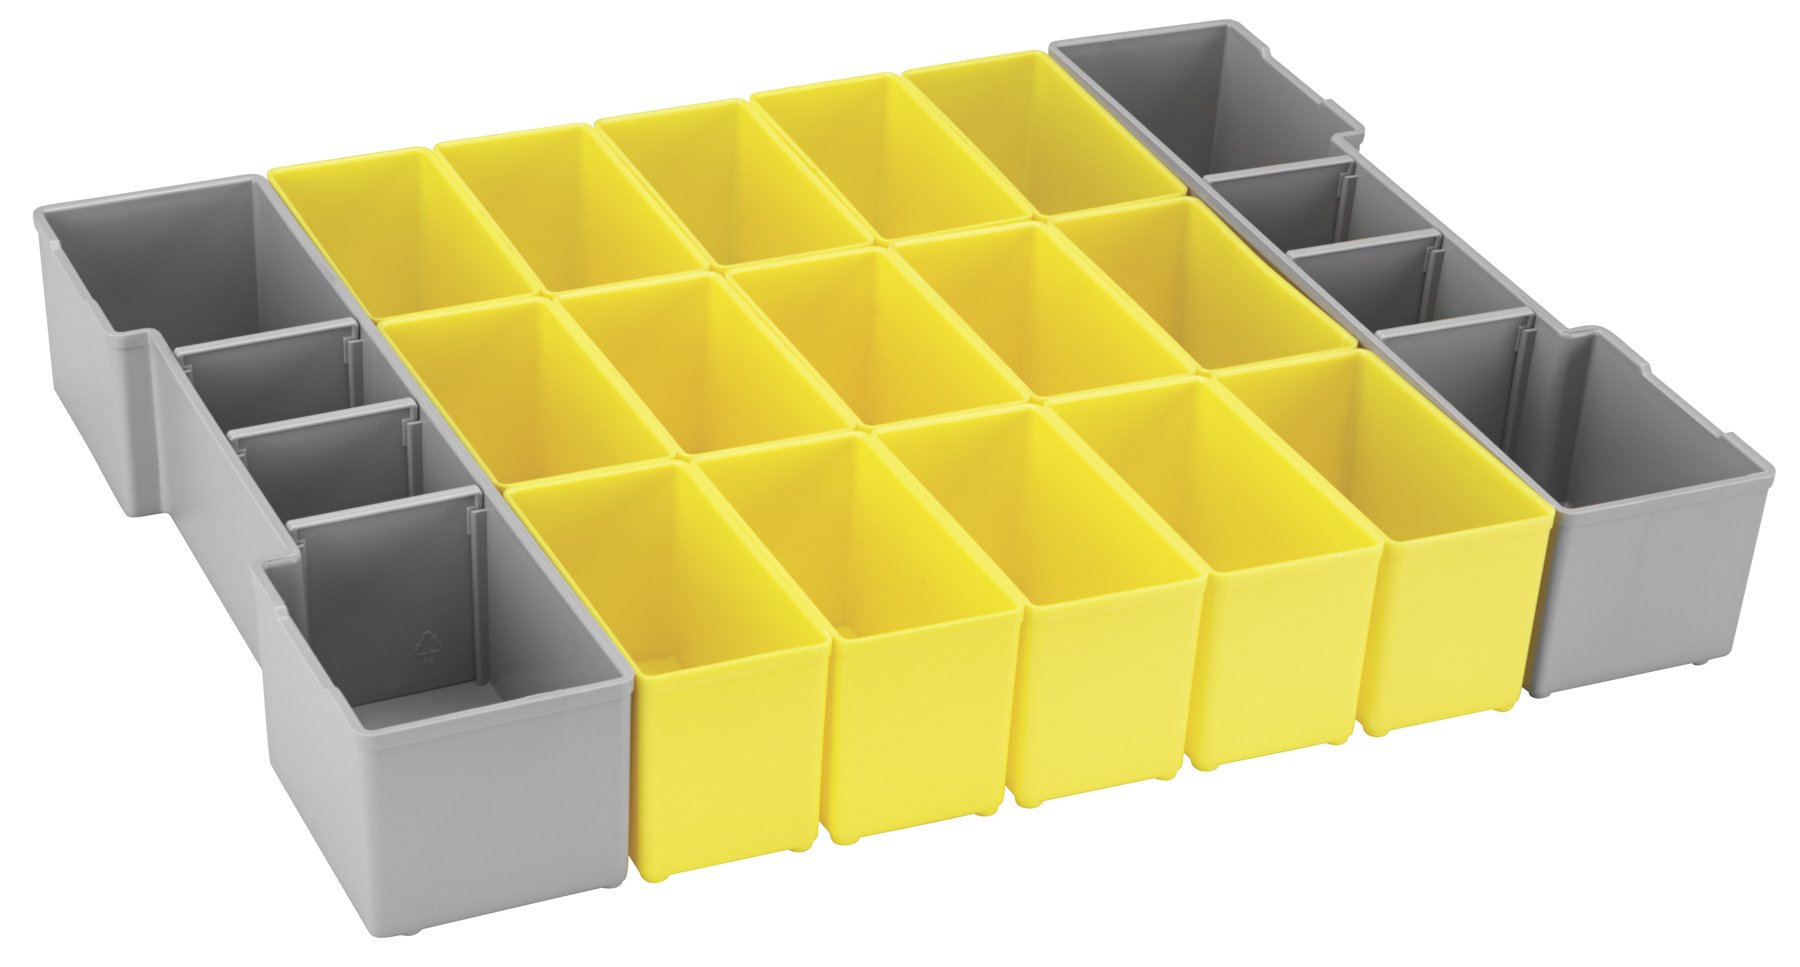 Bosch Bosch ORG1A-YELLOW Organizer Set for L-BOXX-1A, Part of Click and Go Mobile Transport System, 17-Piece